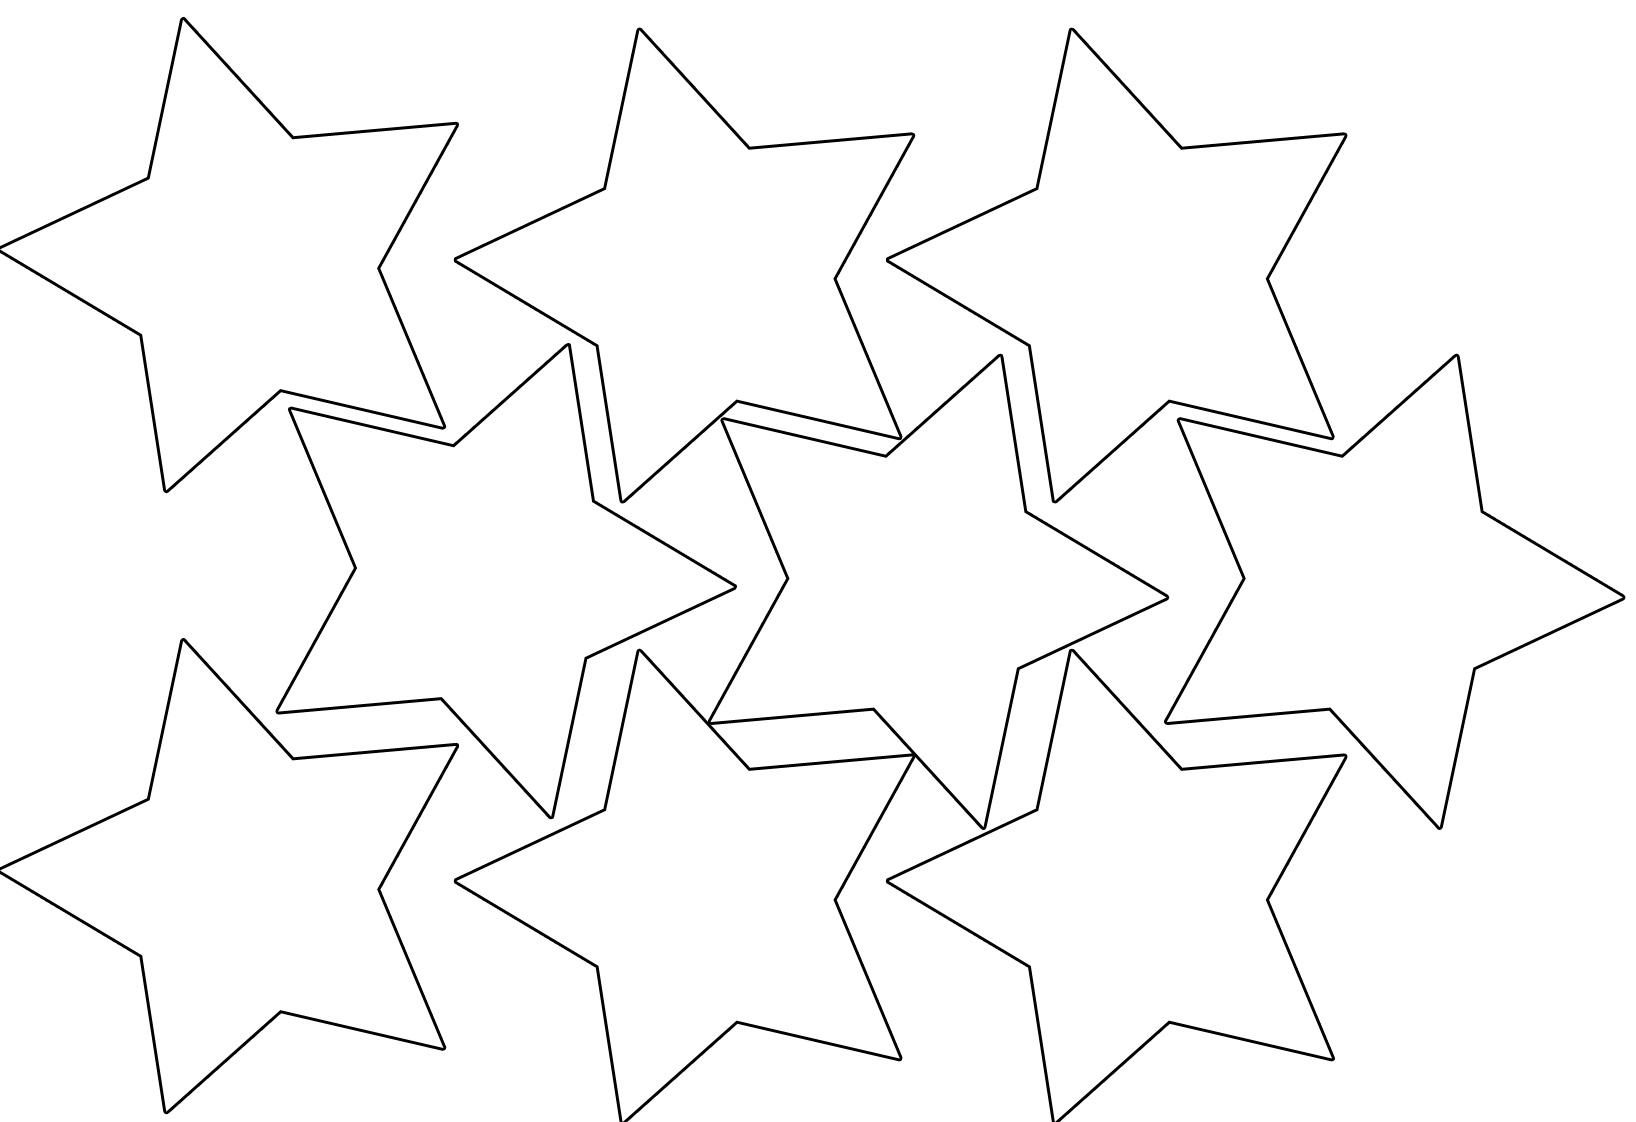 printable pictures of stars clipart stars pdf 2 inch star template printable hd png stars of pictures printable